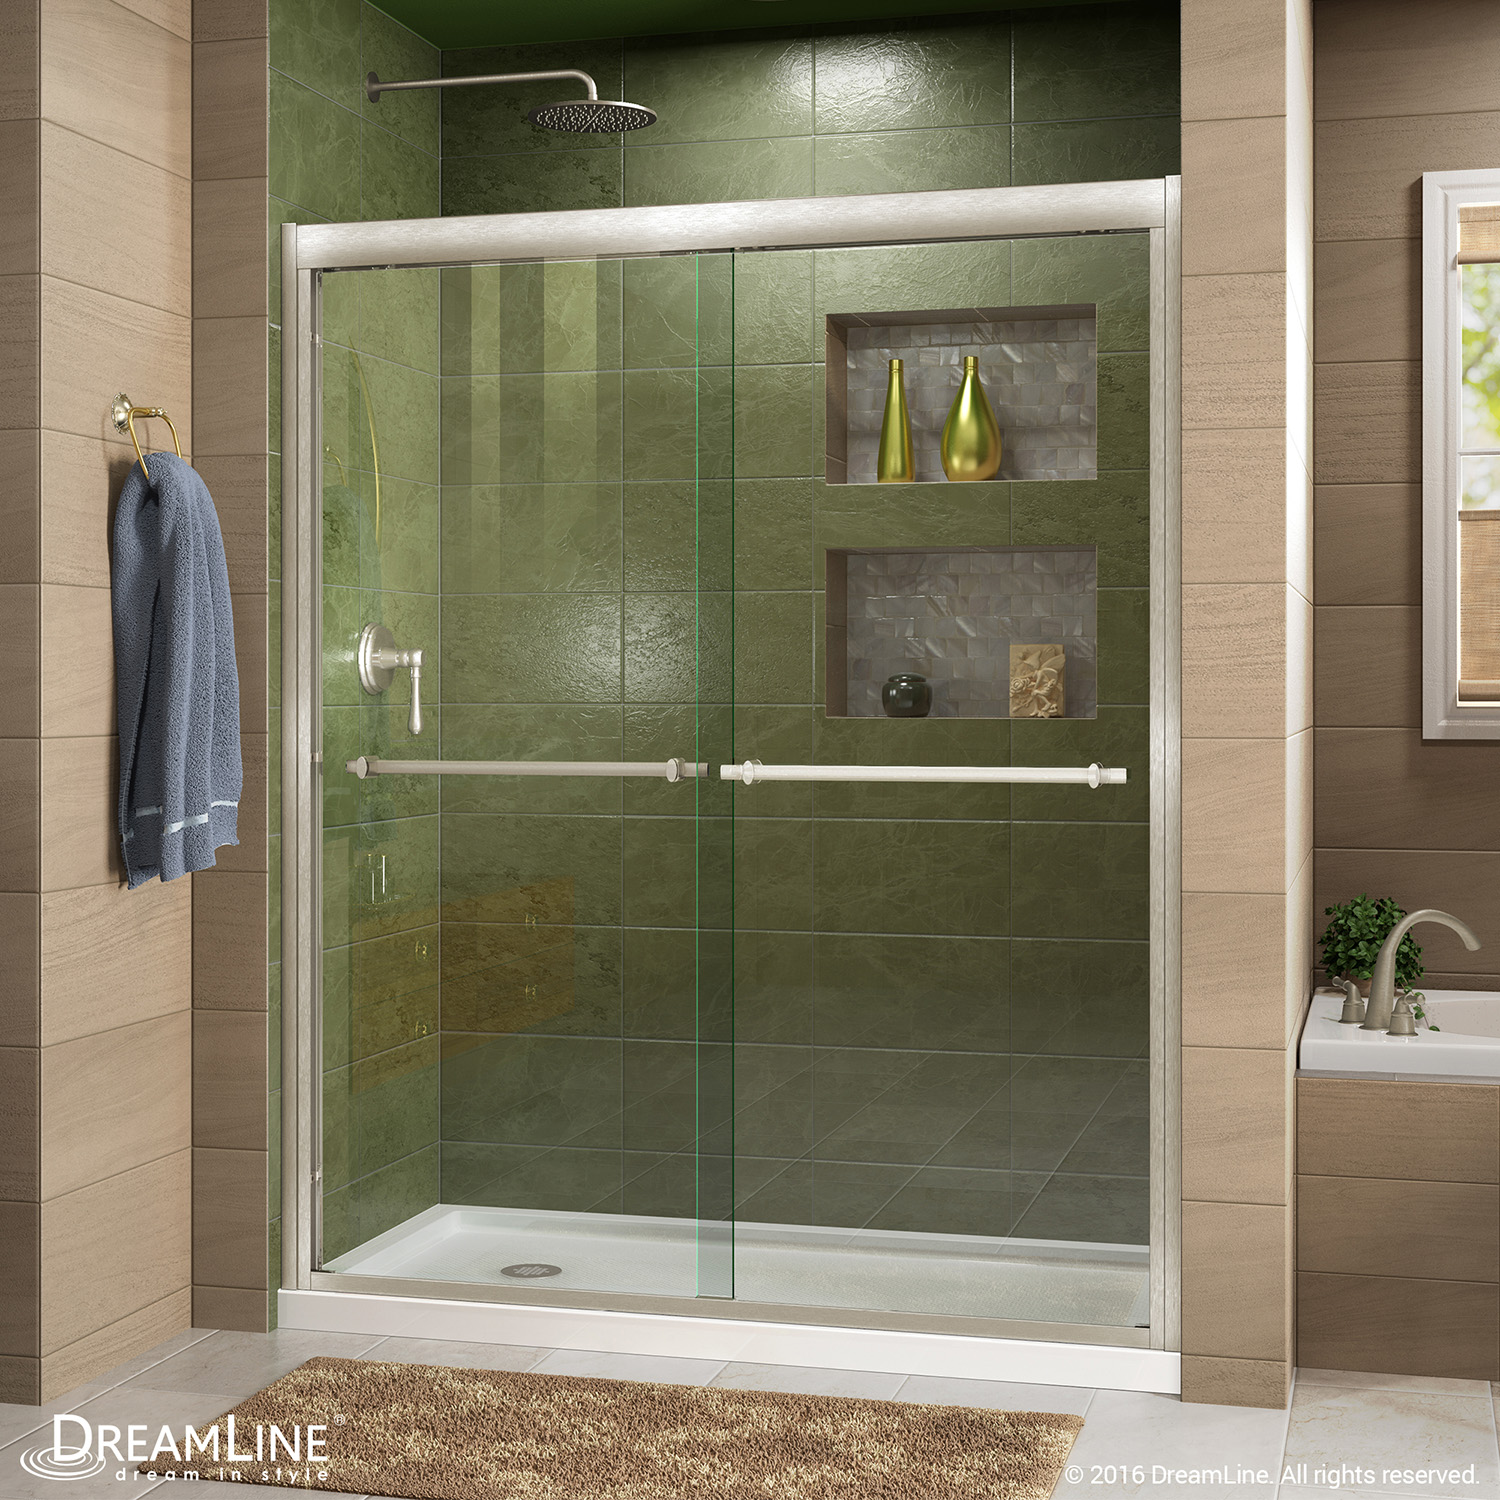 Bath4all Dreamline Shdr 1248728 04 Duet 44 To 48